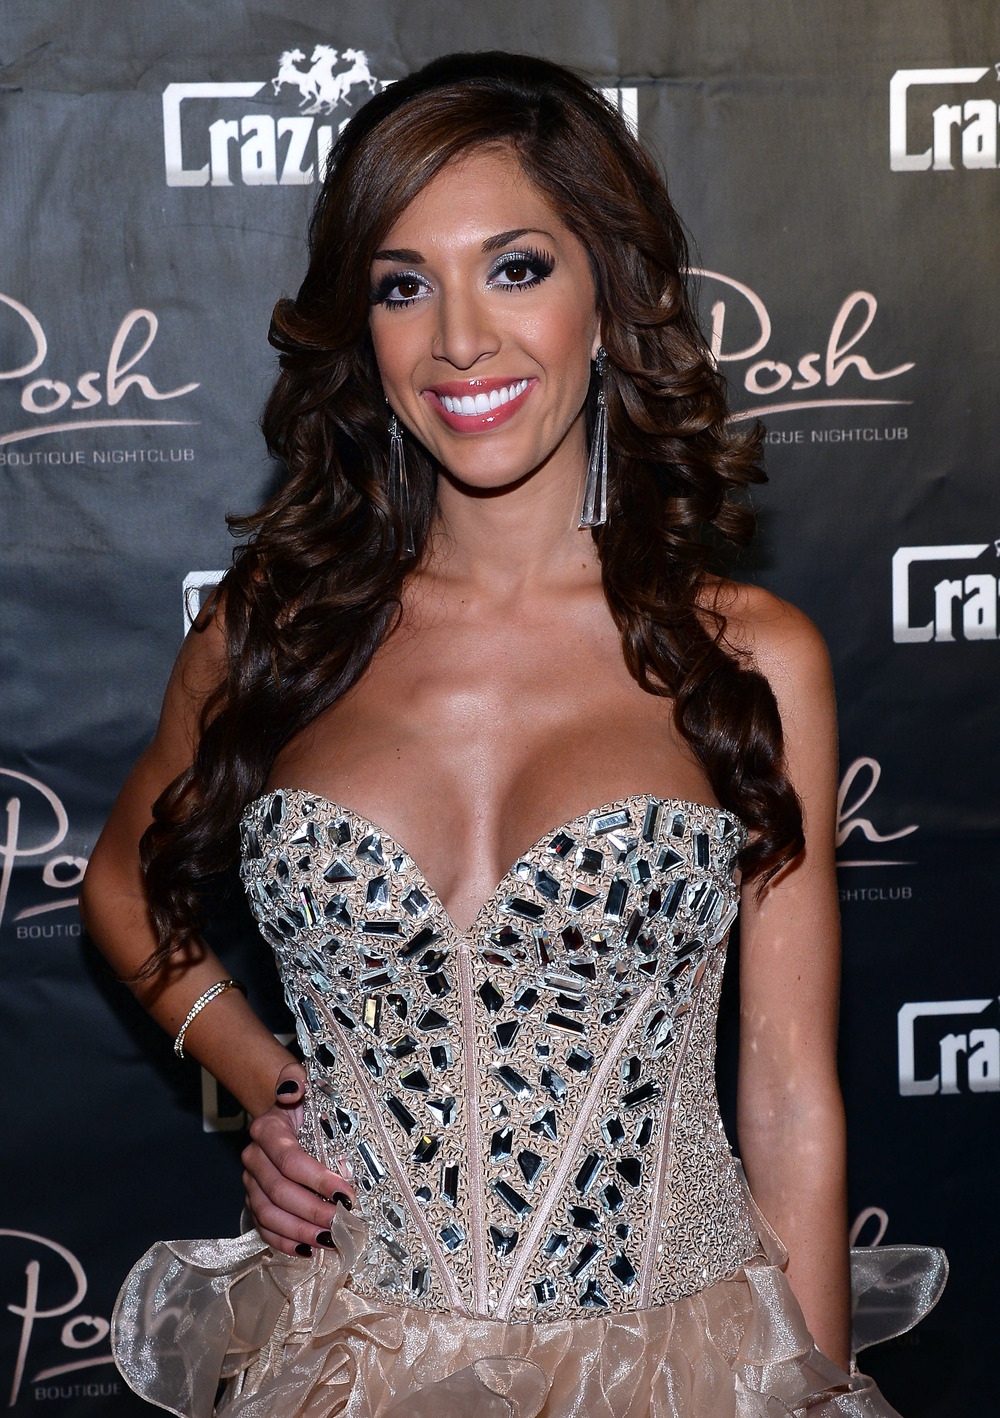 Farrah Abraham Posts Controversial Tweet — Are You Offended?